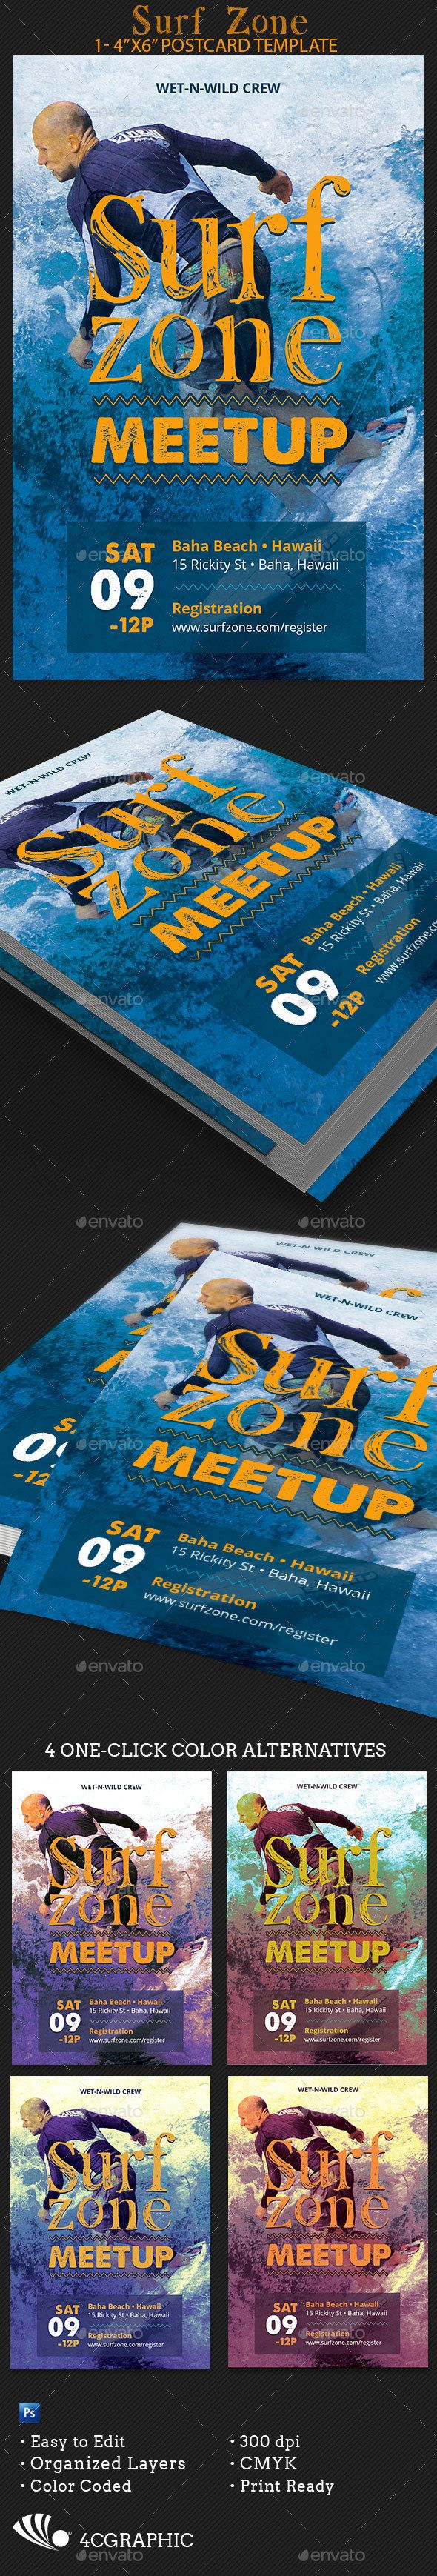 Best Events Print Templates Images On